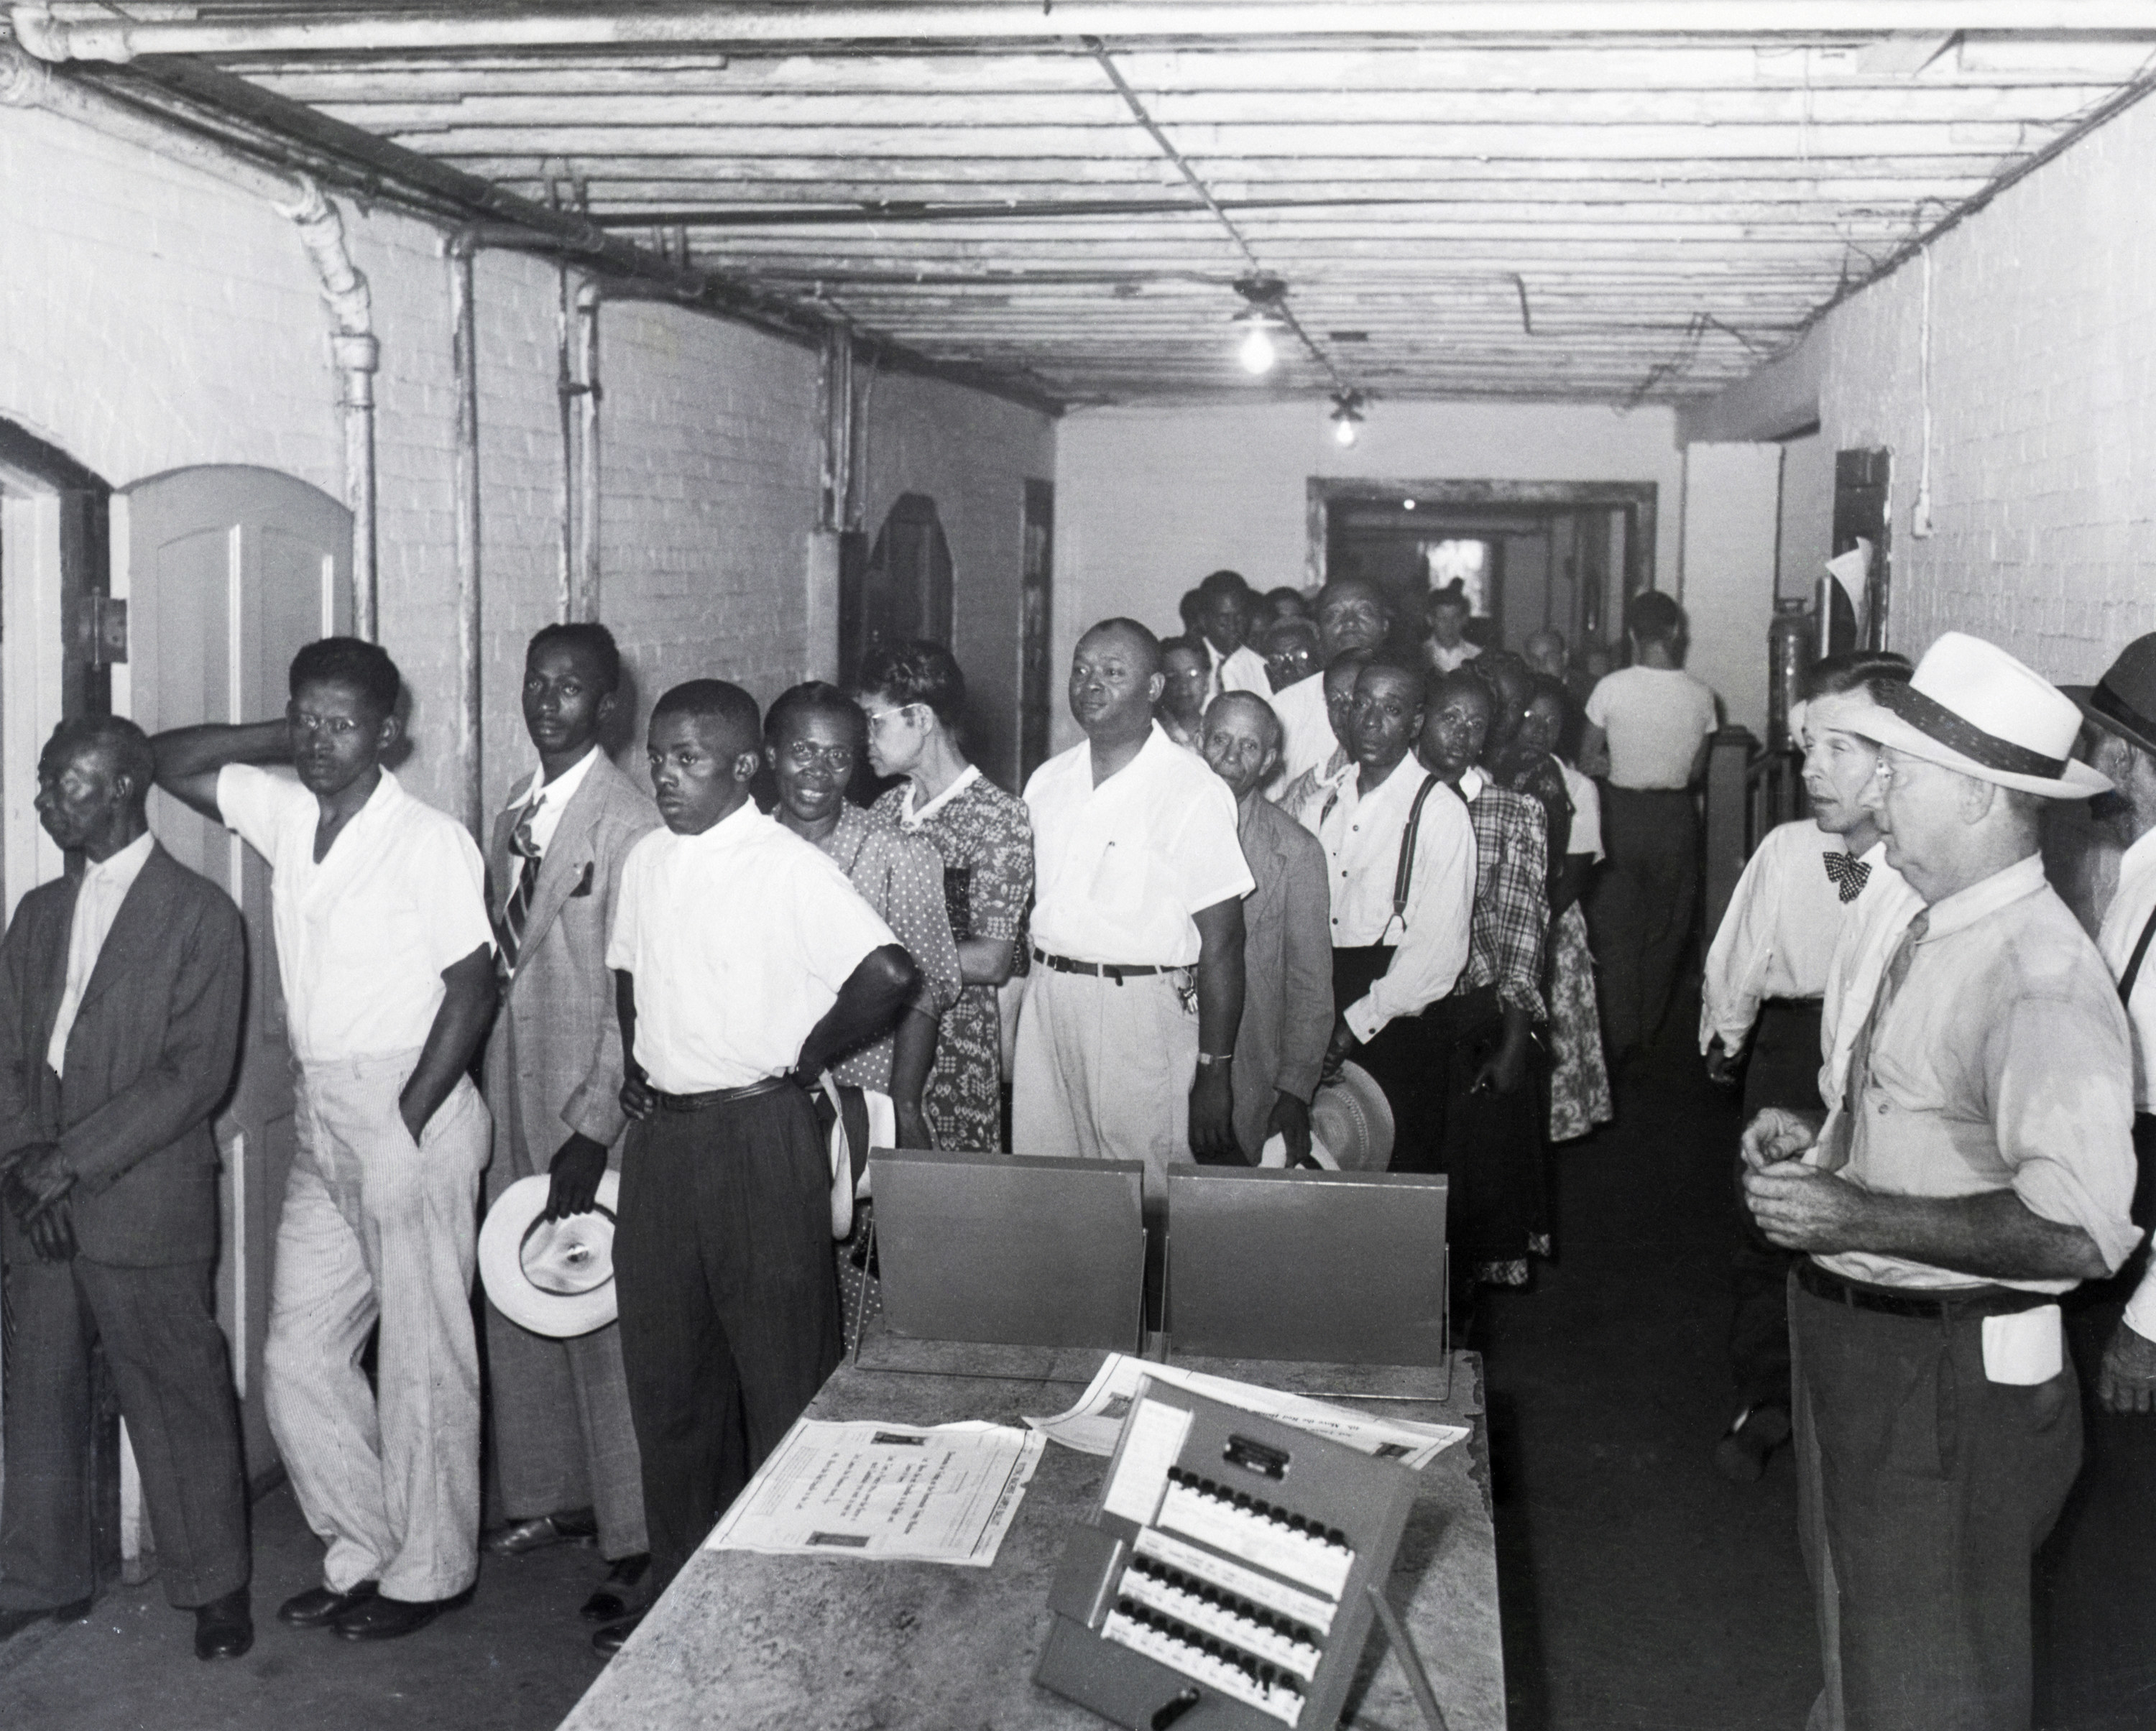 Black men line up, holding hats and dressed nicely, in a room where they are watched by white people